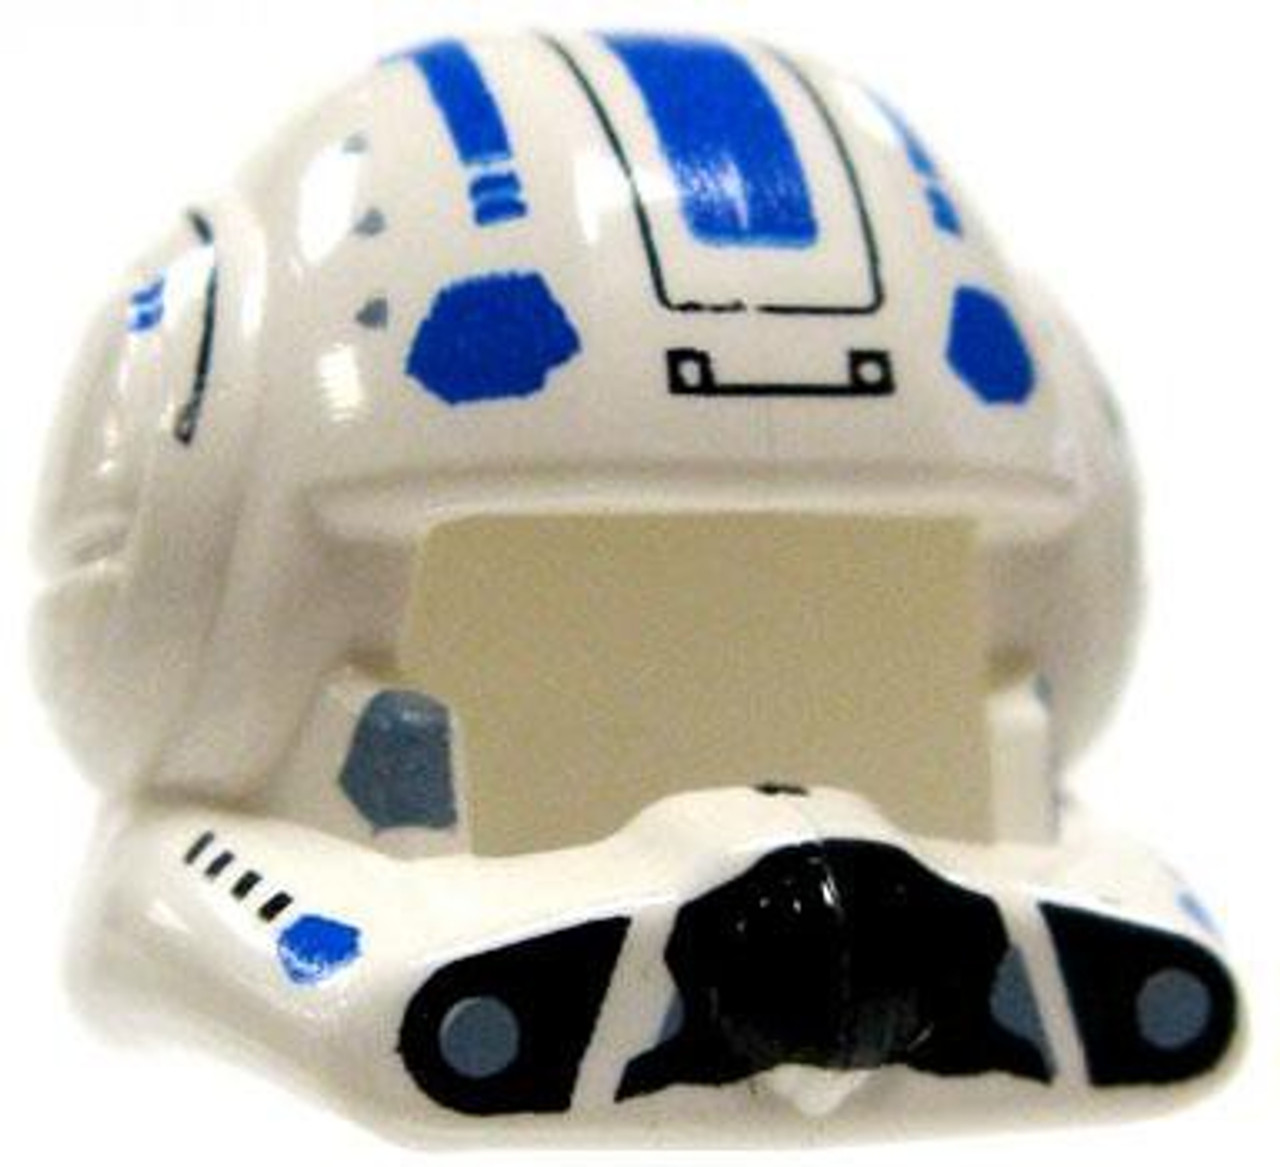 Clone Army Helmet Set Star Wars The Clone Wars Roblox Lego Star Wars The Clone Wars Headgear Clone Pilots Helmet With Open Visor Blue Markings Loose Toywiz